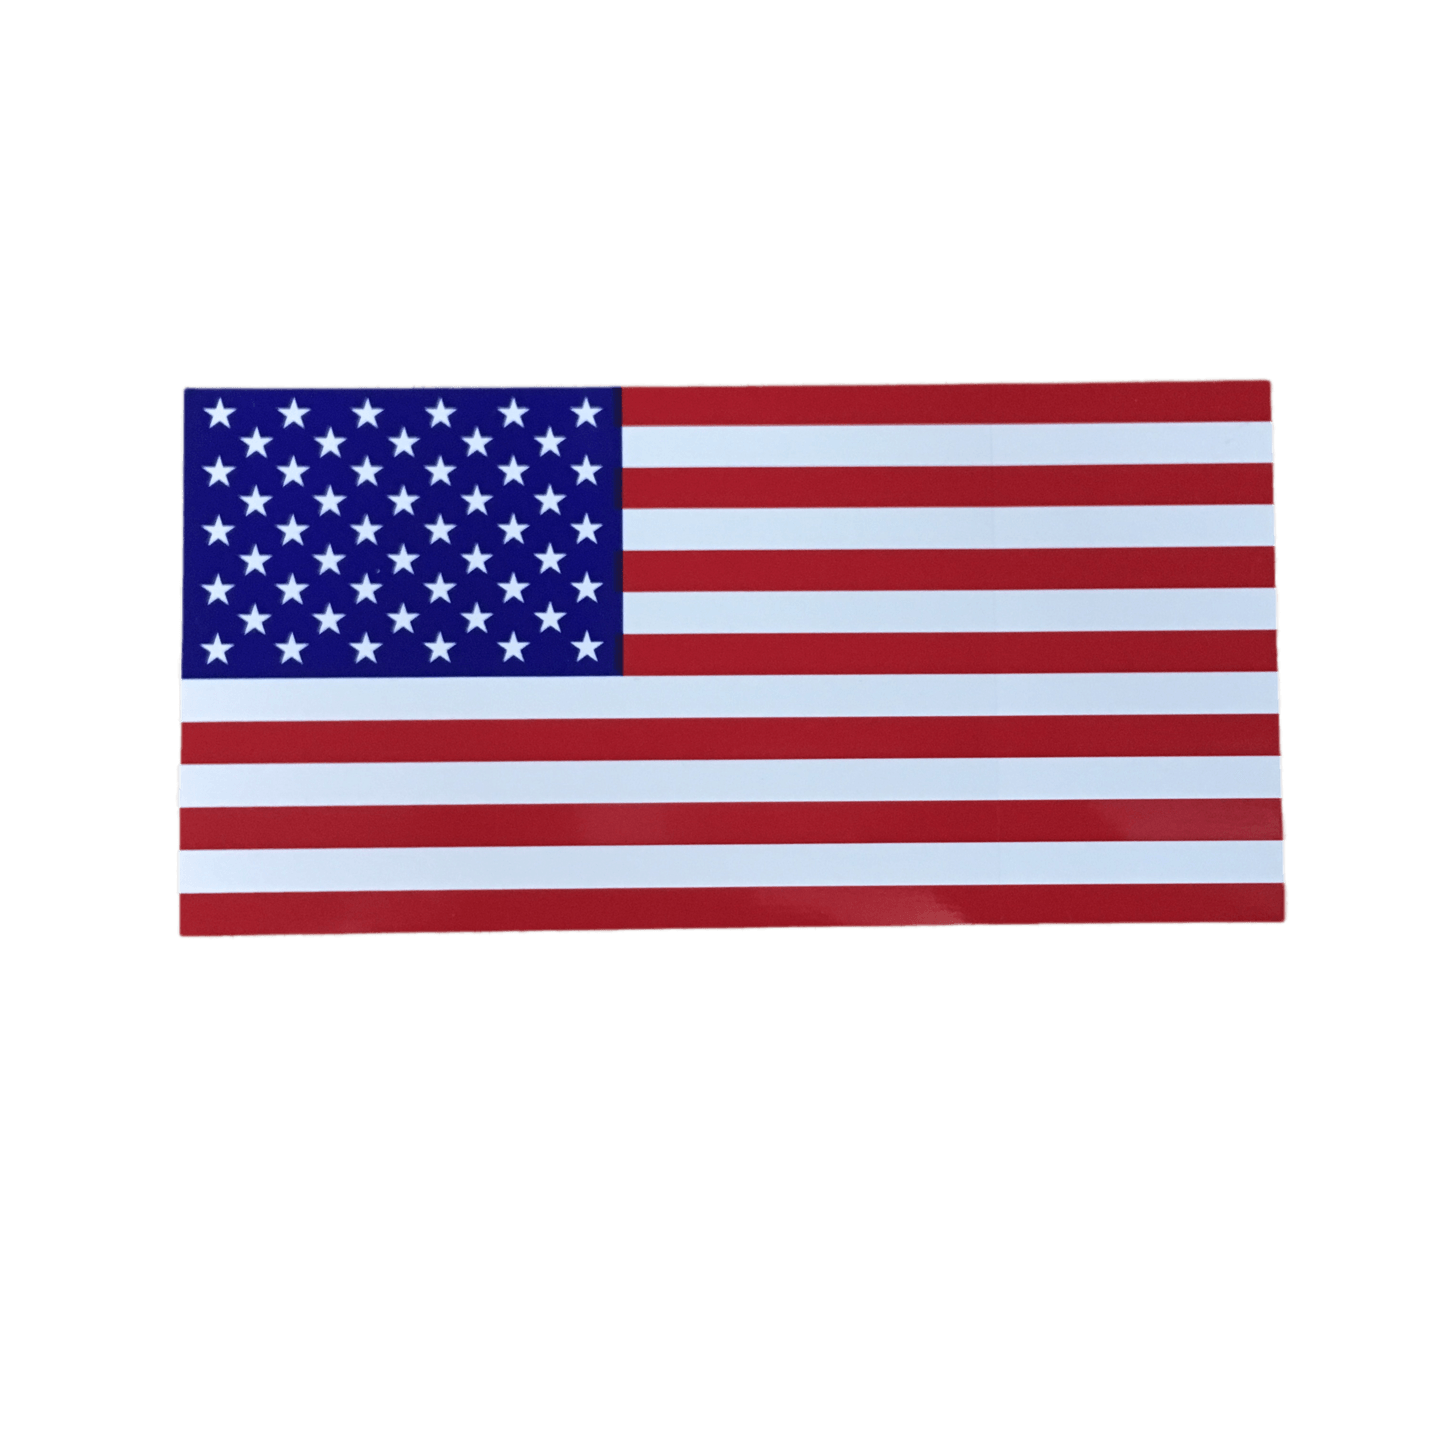 American flag sticker largestickerthe dixie shop 14558178 pngv1536520756